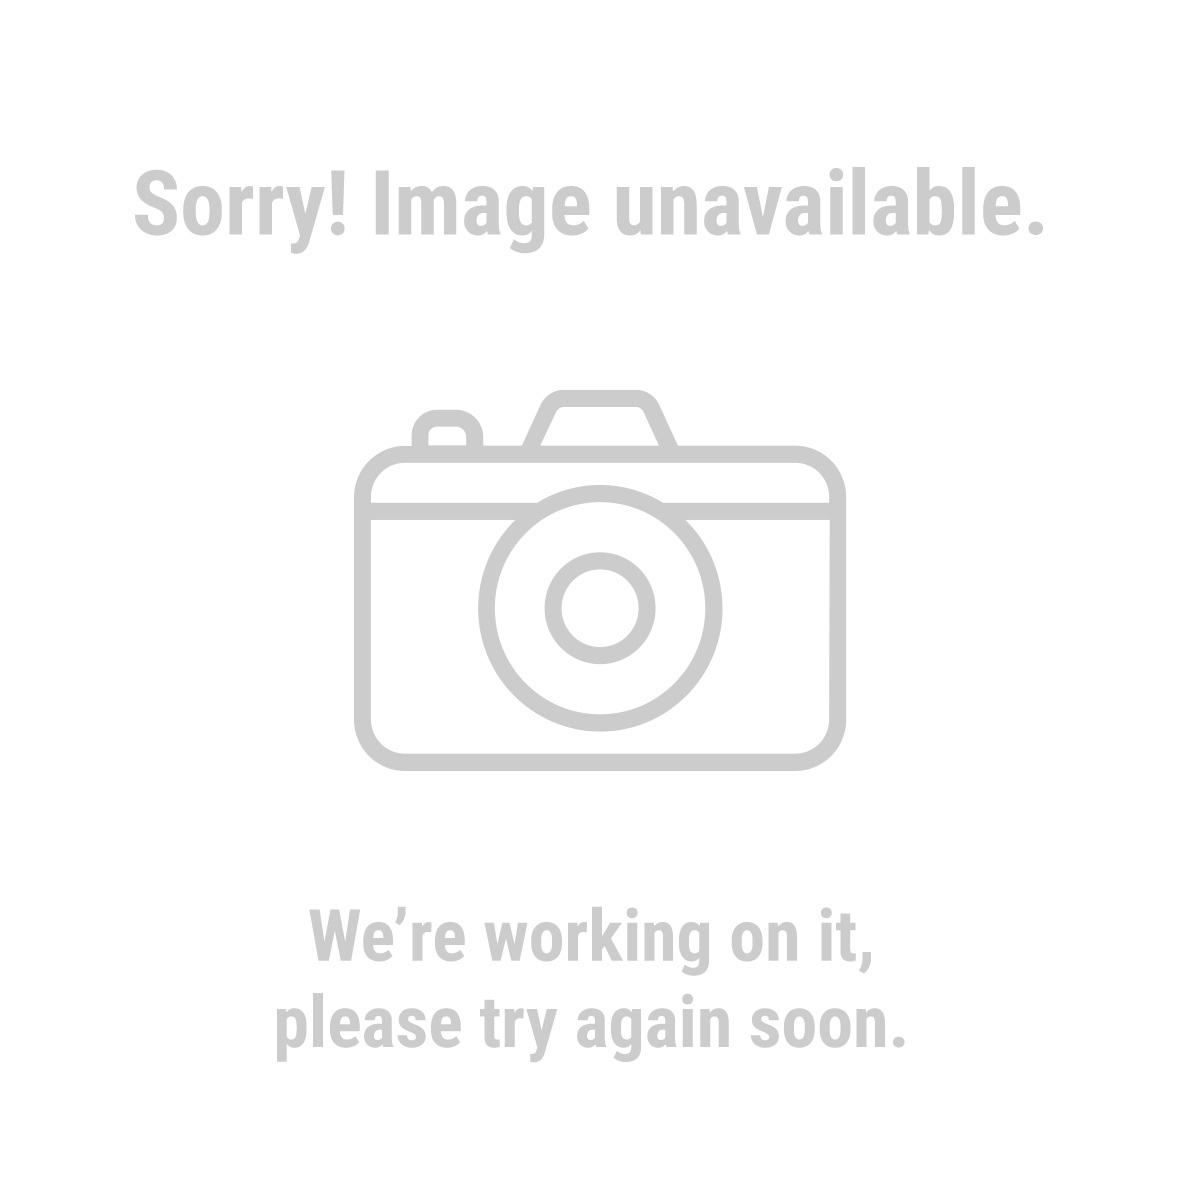 Locking Pin For Trailer Hitch